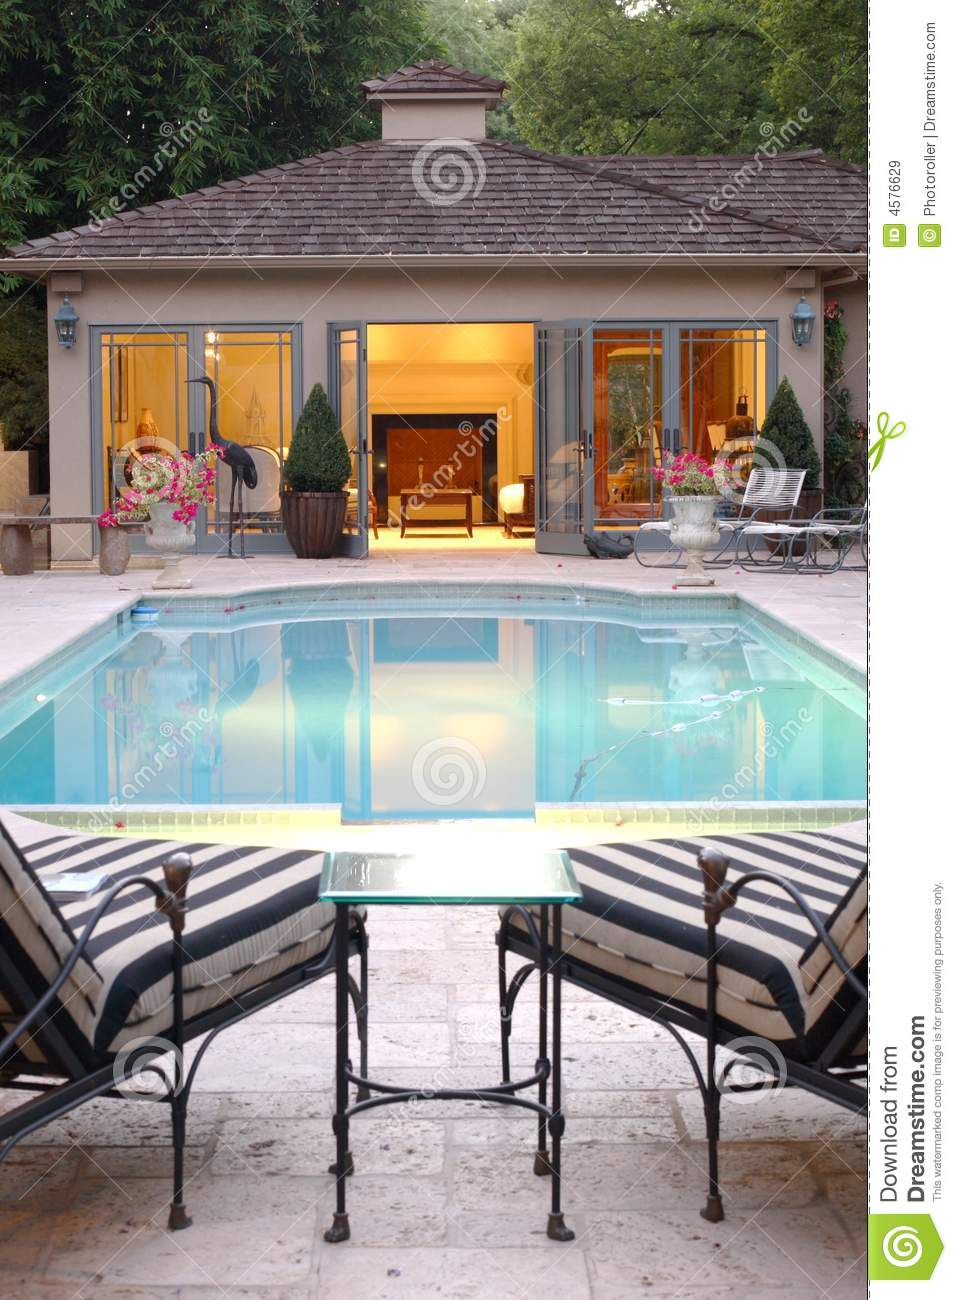 Poolhaus Backyard Pool House Stock Image Image Of Lounge Fire 4576629